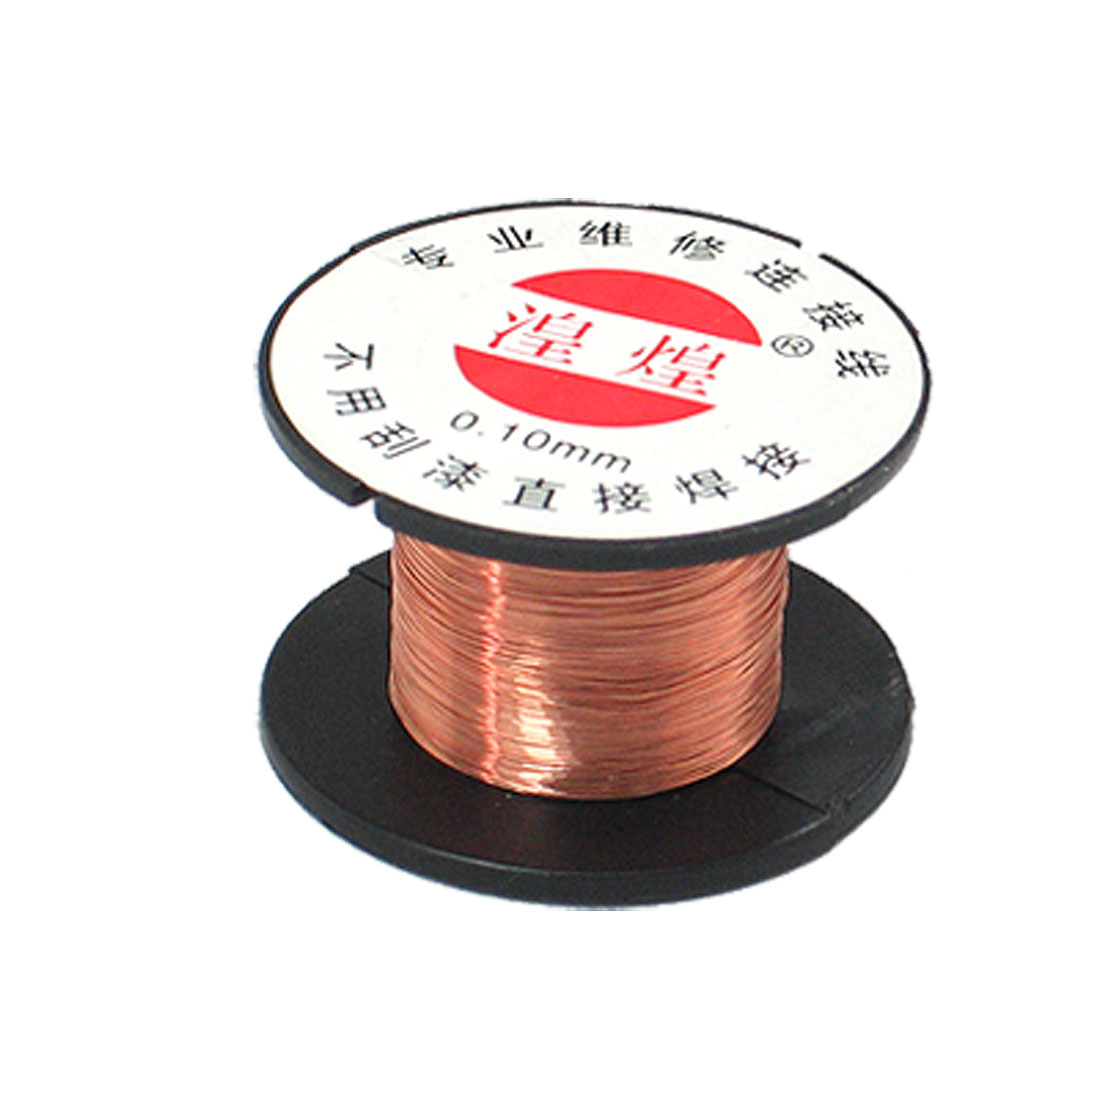 0.1mm Copper Repair Soldering Solder PPA Enamelled Wire Reel for PC PCB Phone